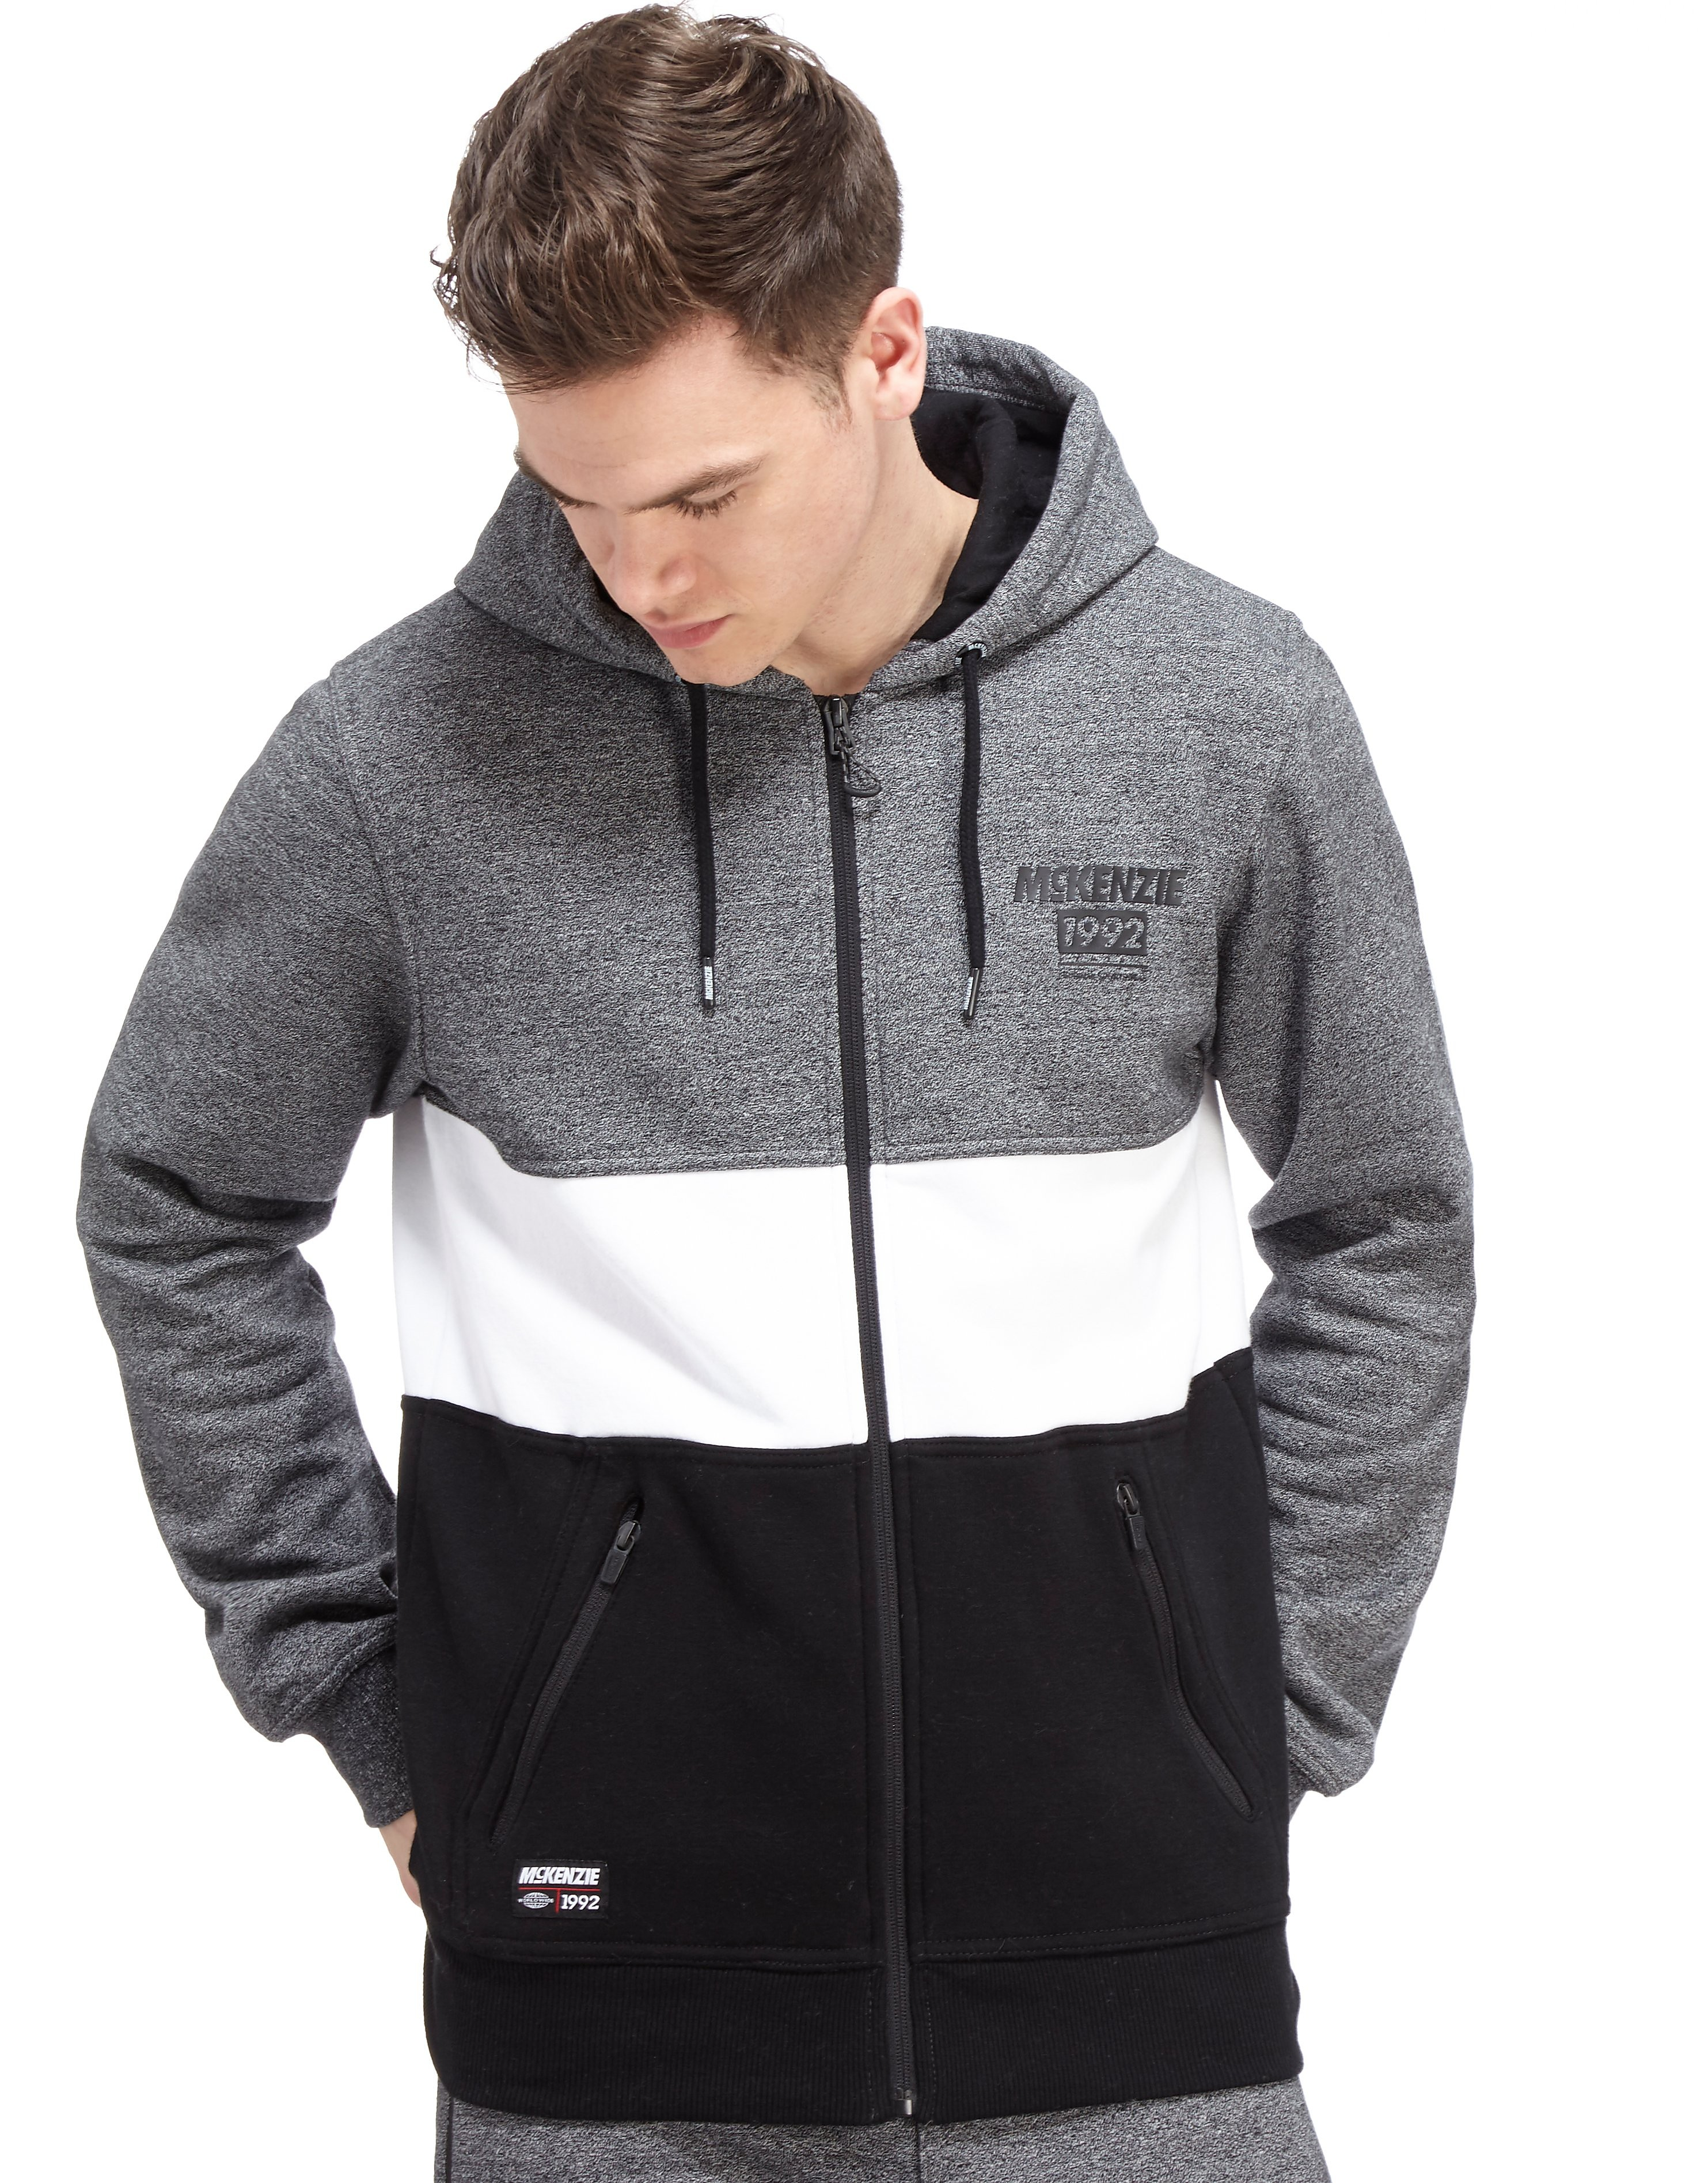 McKenzie Darklodge Zip Up Hoody